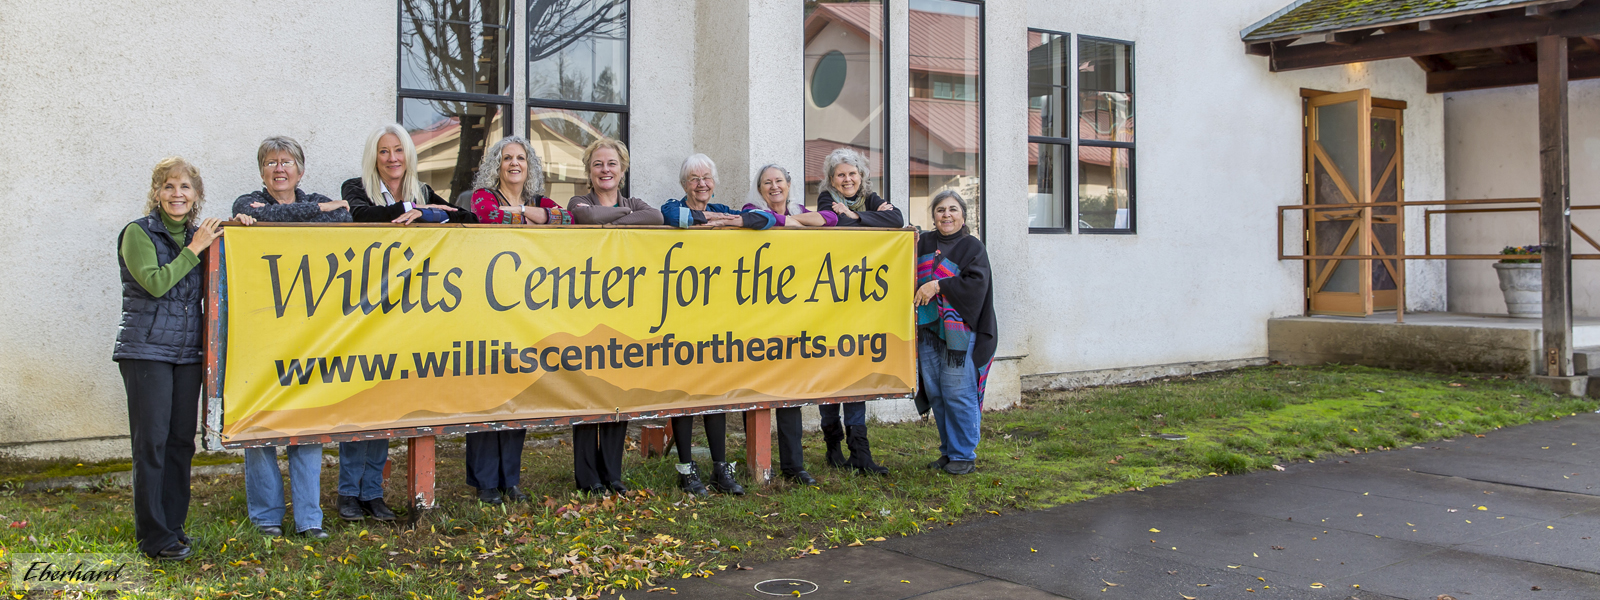 Willits Center for the Arts